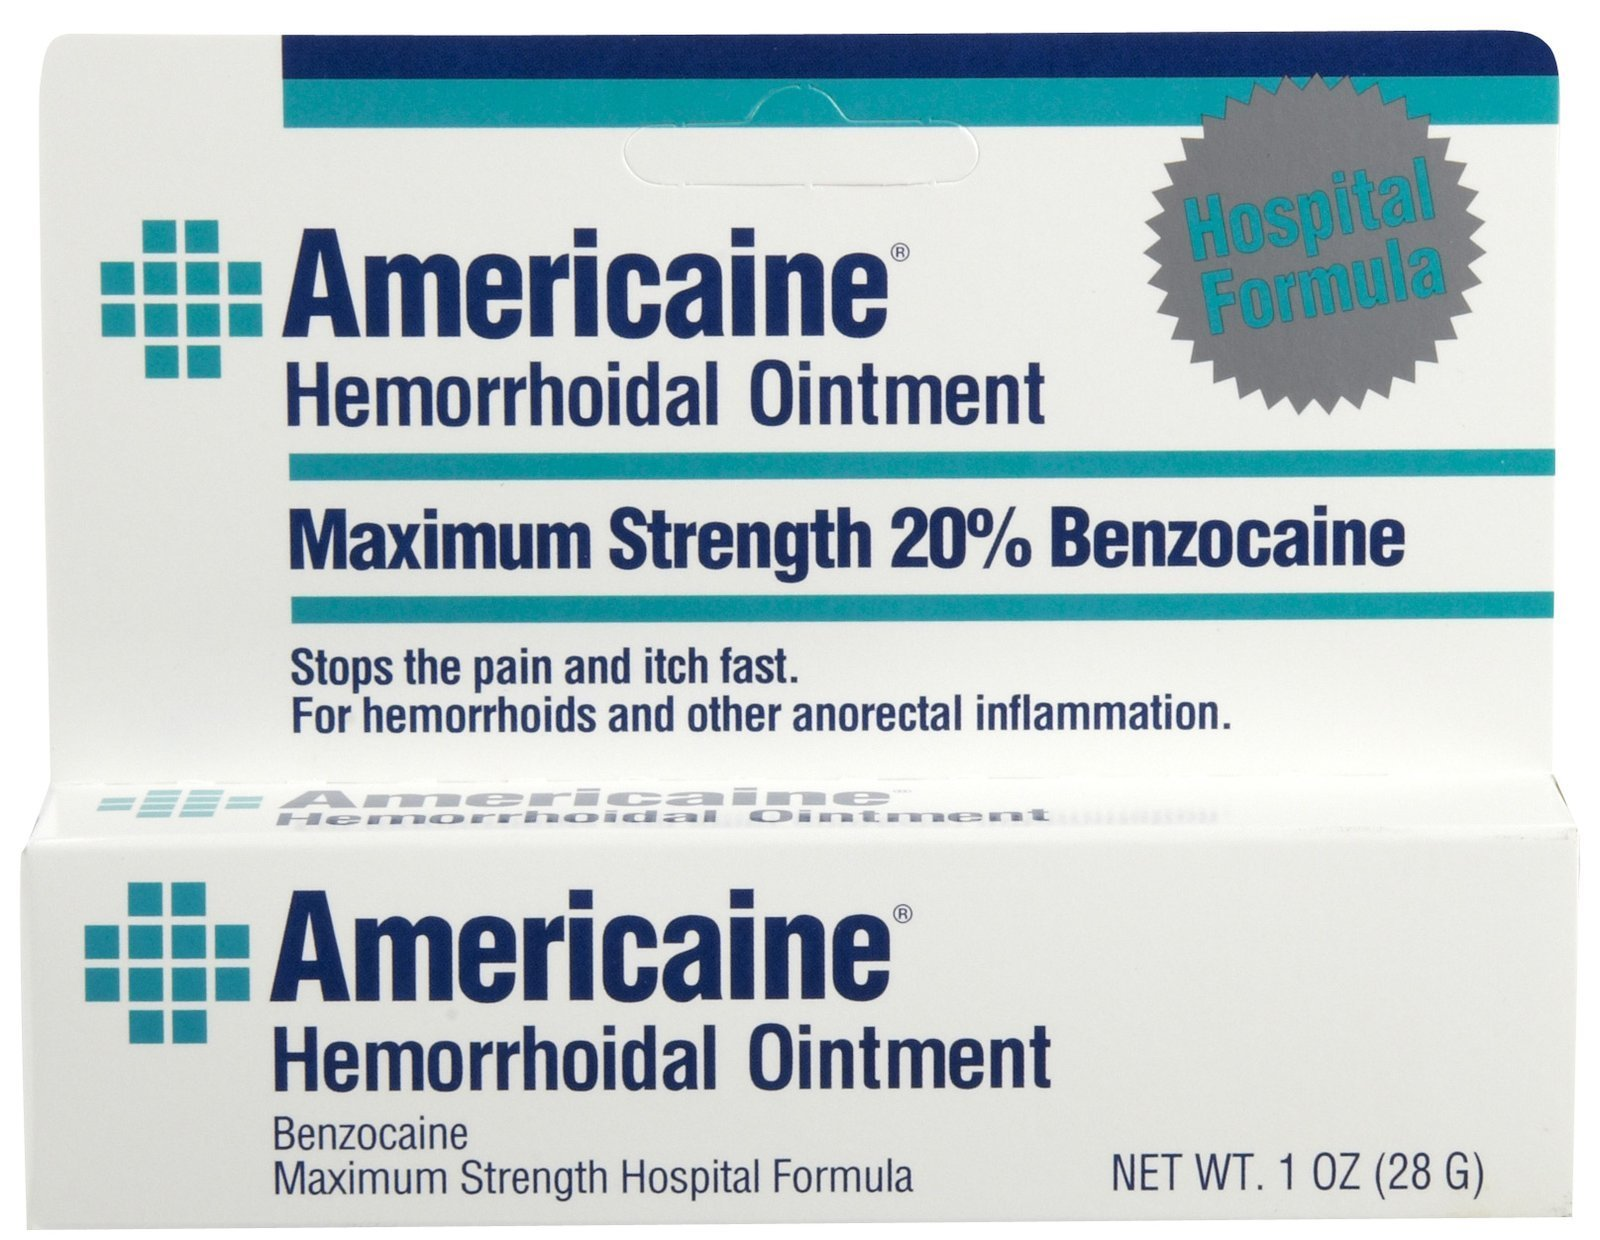 Americaine Hemorrhoidal Ointment Maximum Strength 20% Benzocaine 1 oz